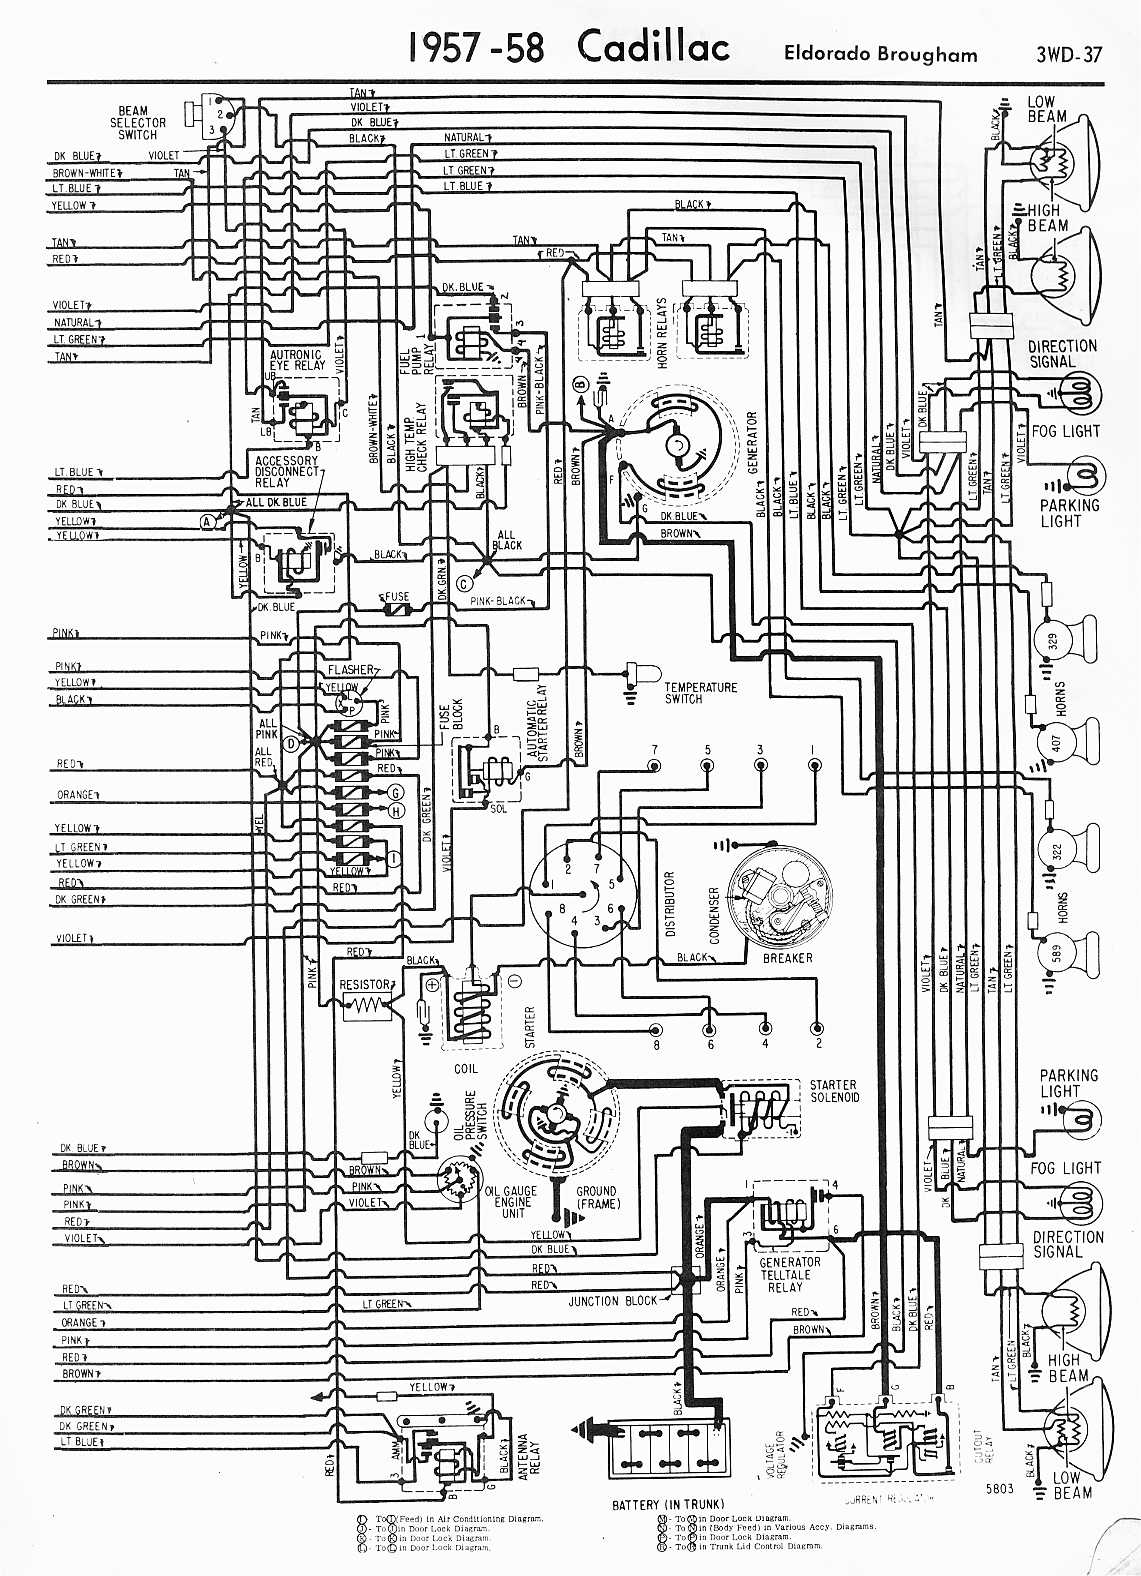 Chrysler 6 Volt Generator Wiring Diagram Libraries Ford 8n Further 1948 Plymouth Library1956 Cadillac Schemes 2004